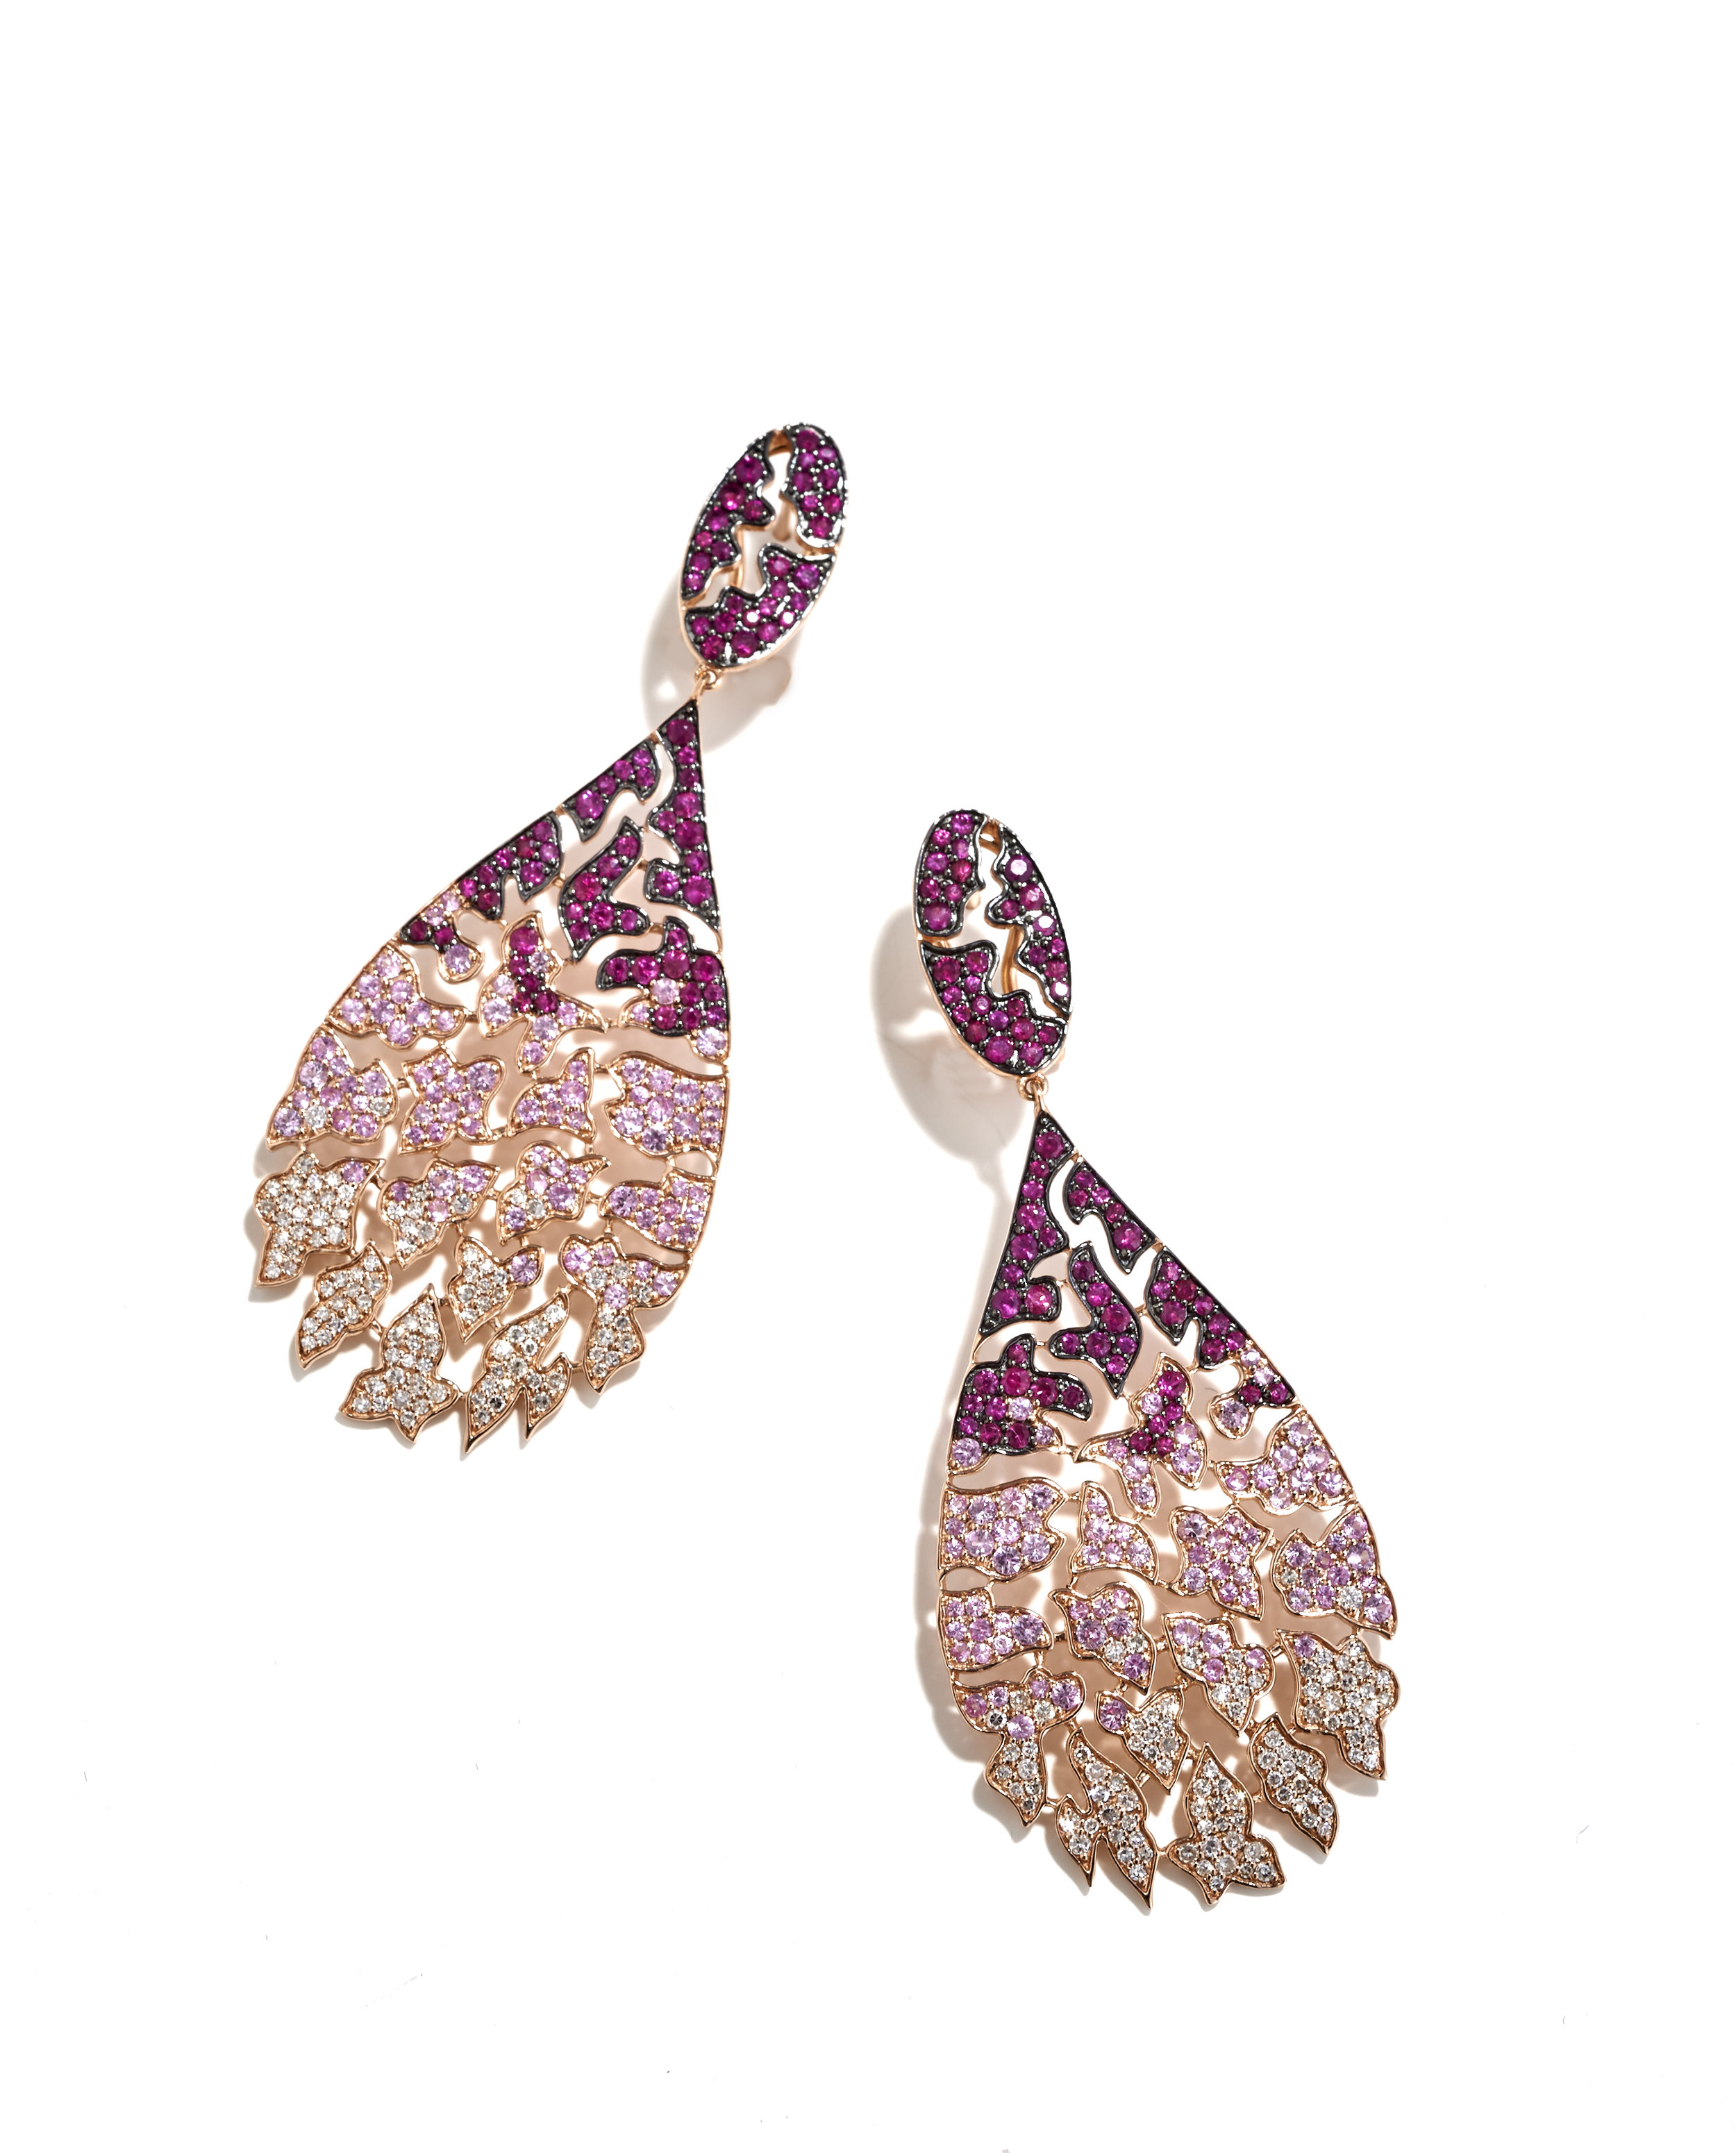 Ruby, pink sapphire and diamond drop earrings, in 18k rose gold